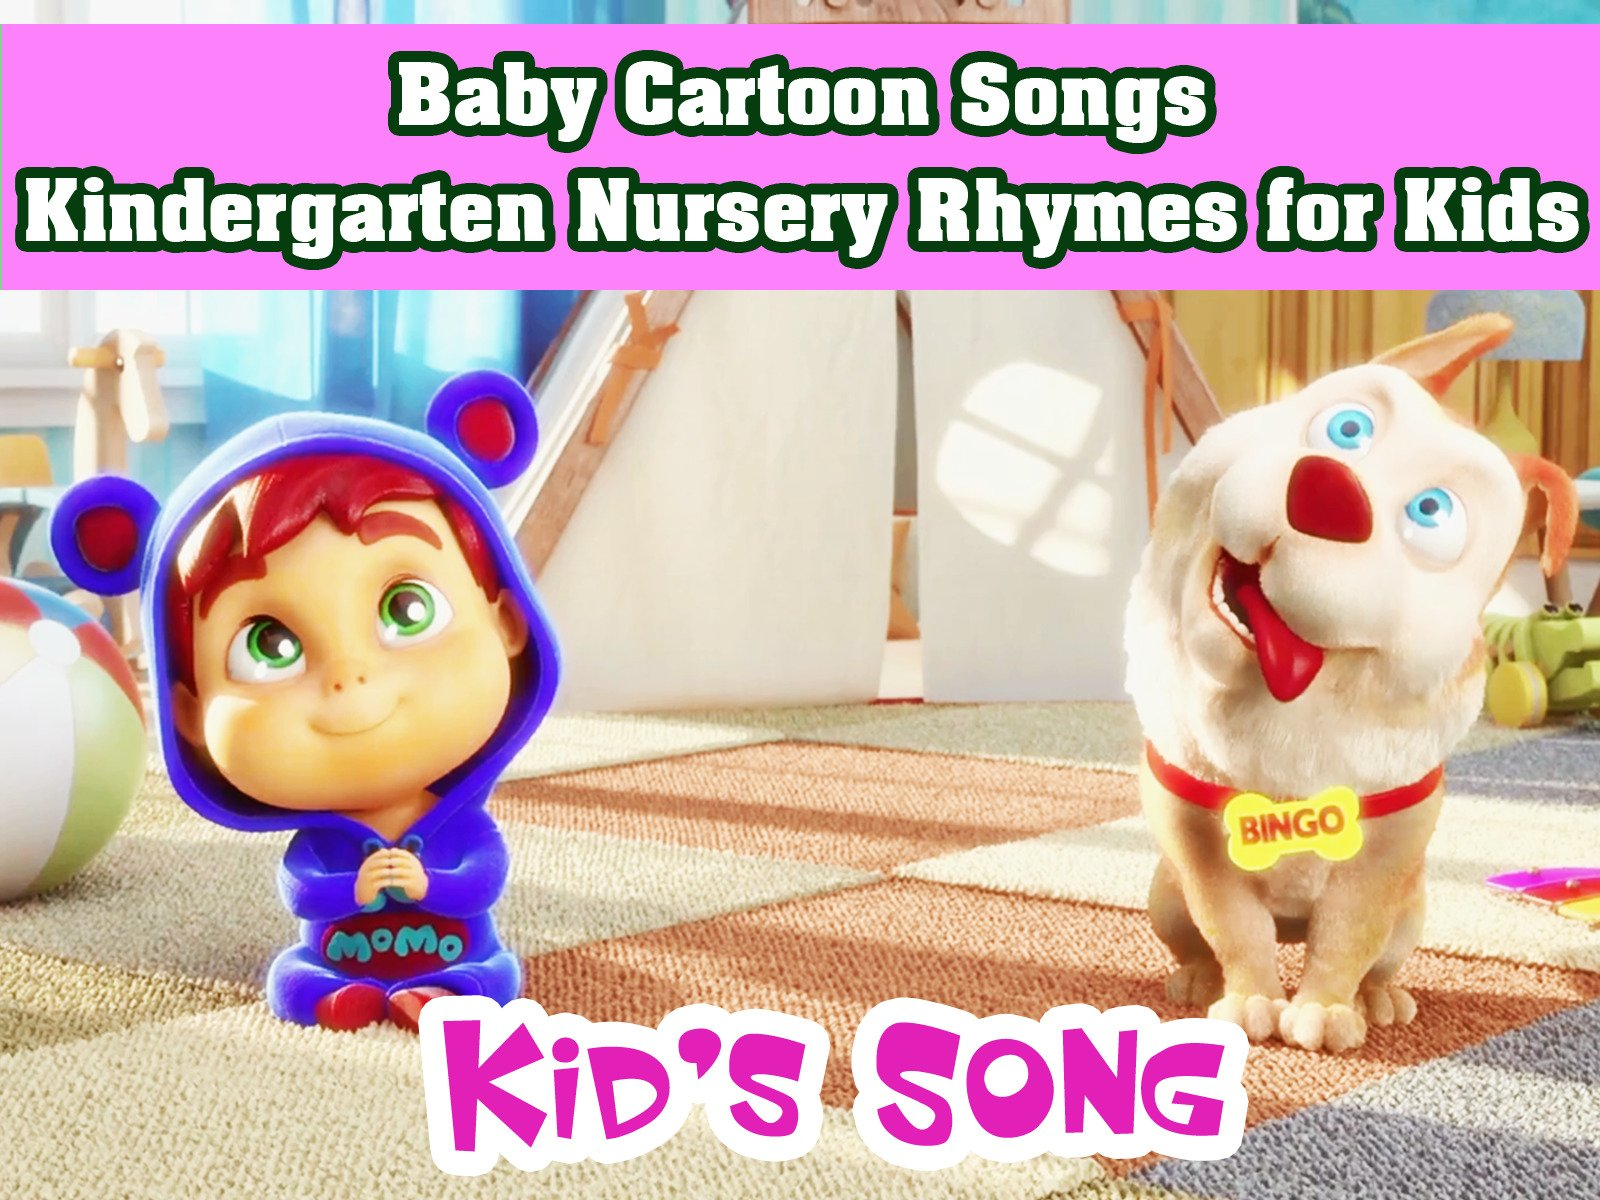 Clip: Baby Cartoon Songs - Season 1